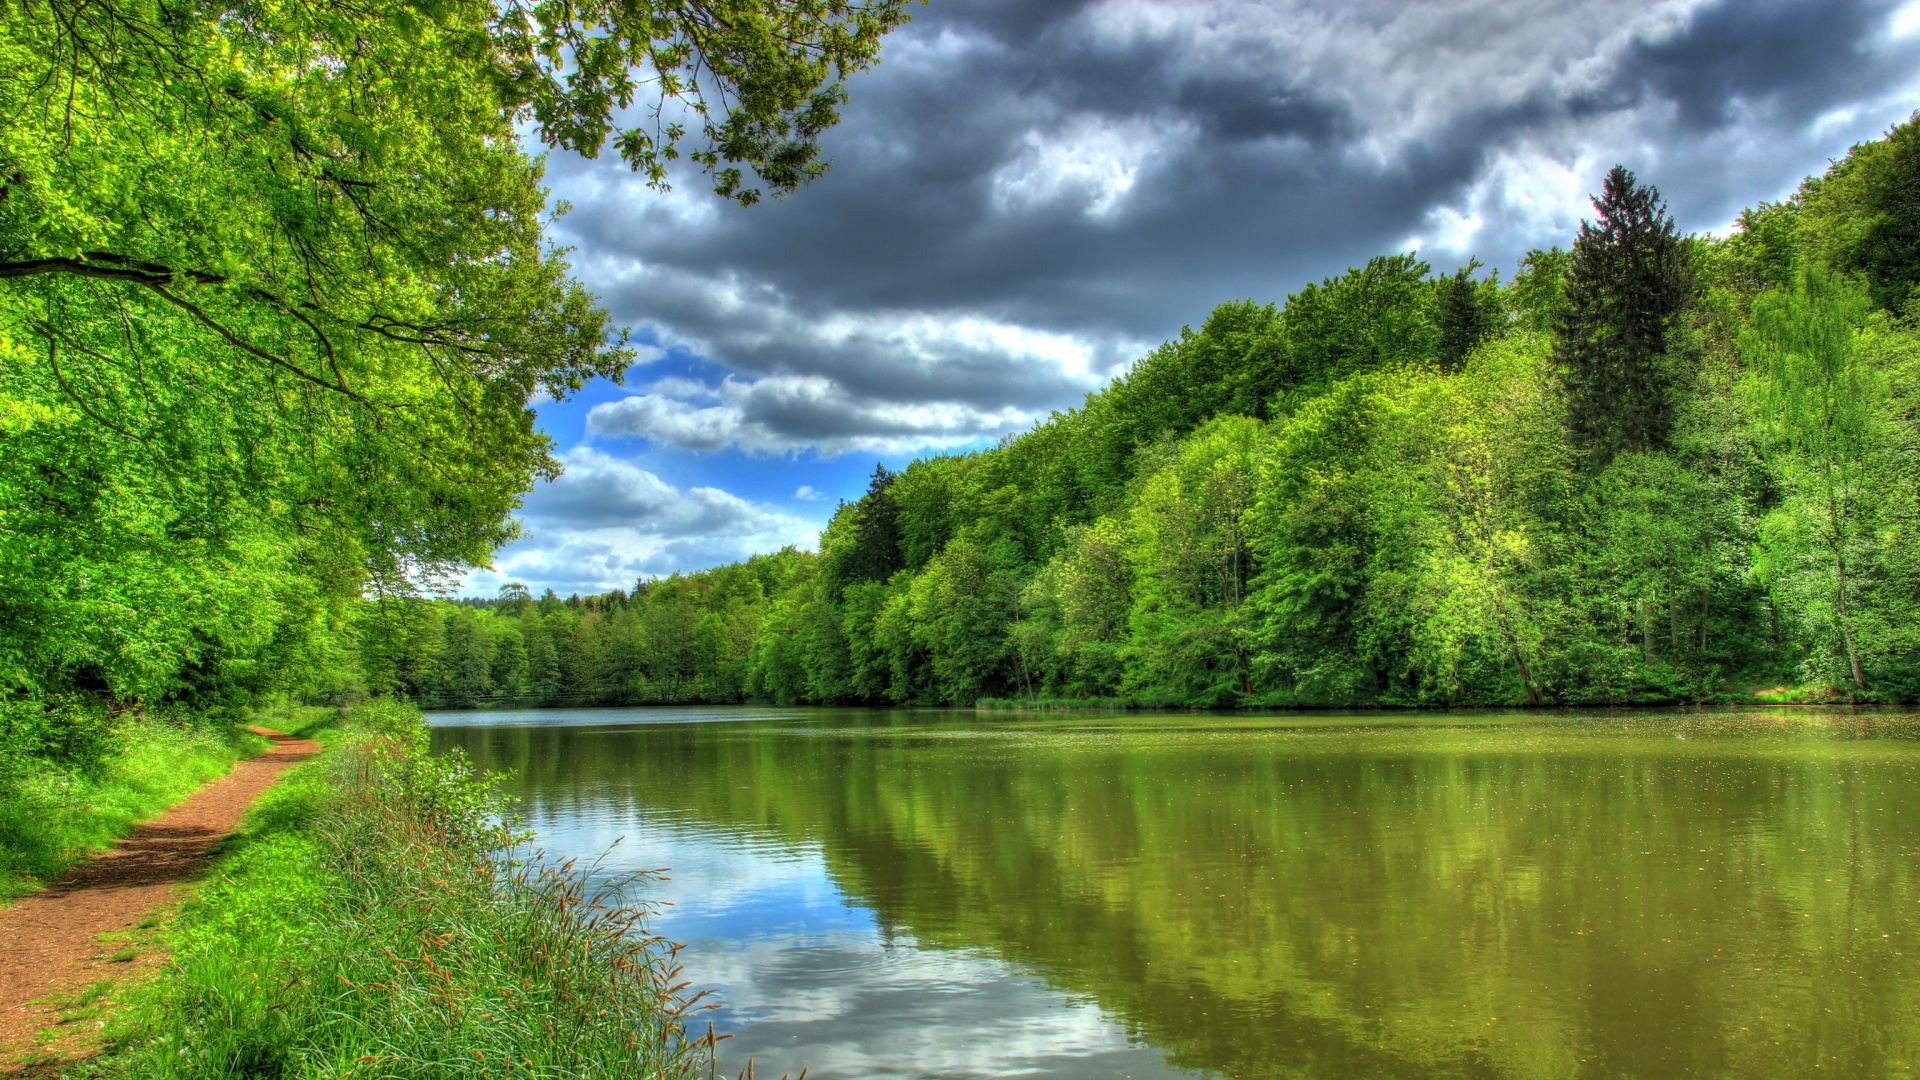 Hd Nature Wallpapers Amazing Landscape Images Green: Awesome Landscape Wallpapers